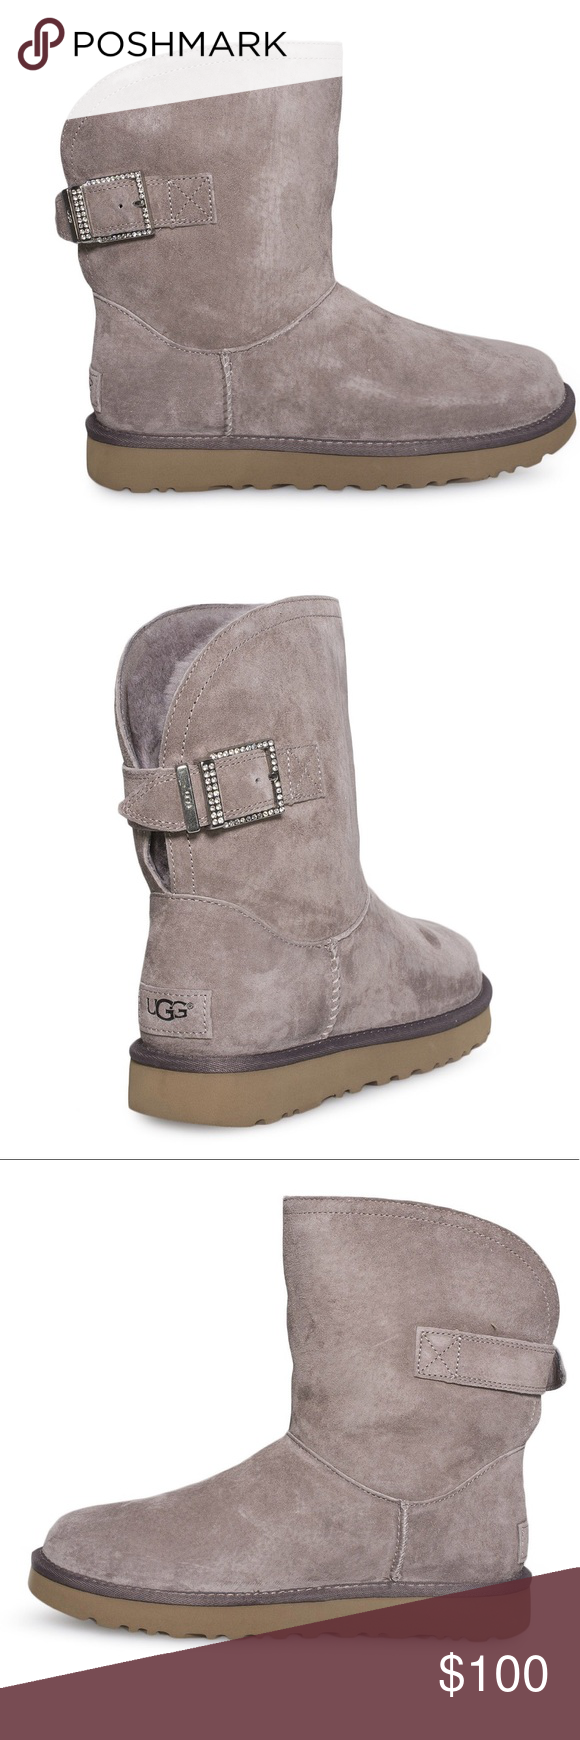 55be4c65292 Brand New Ugh Remora Buckle Boots Brand New Ugg Remora Buckle with ...